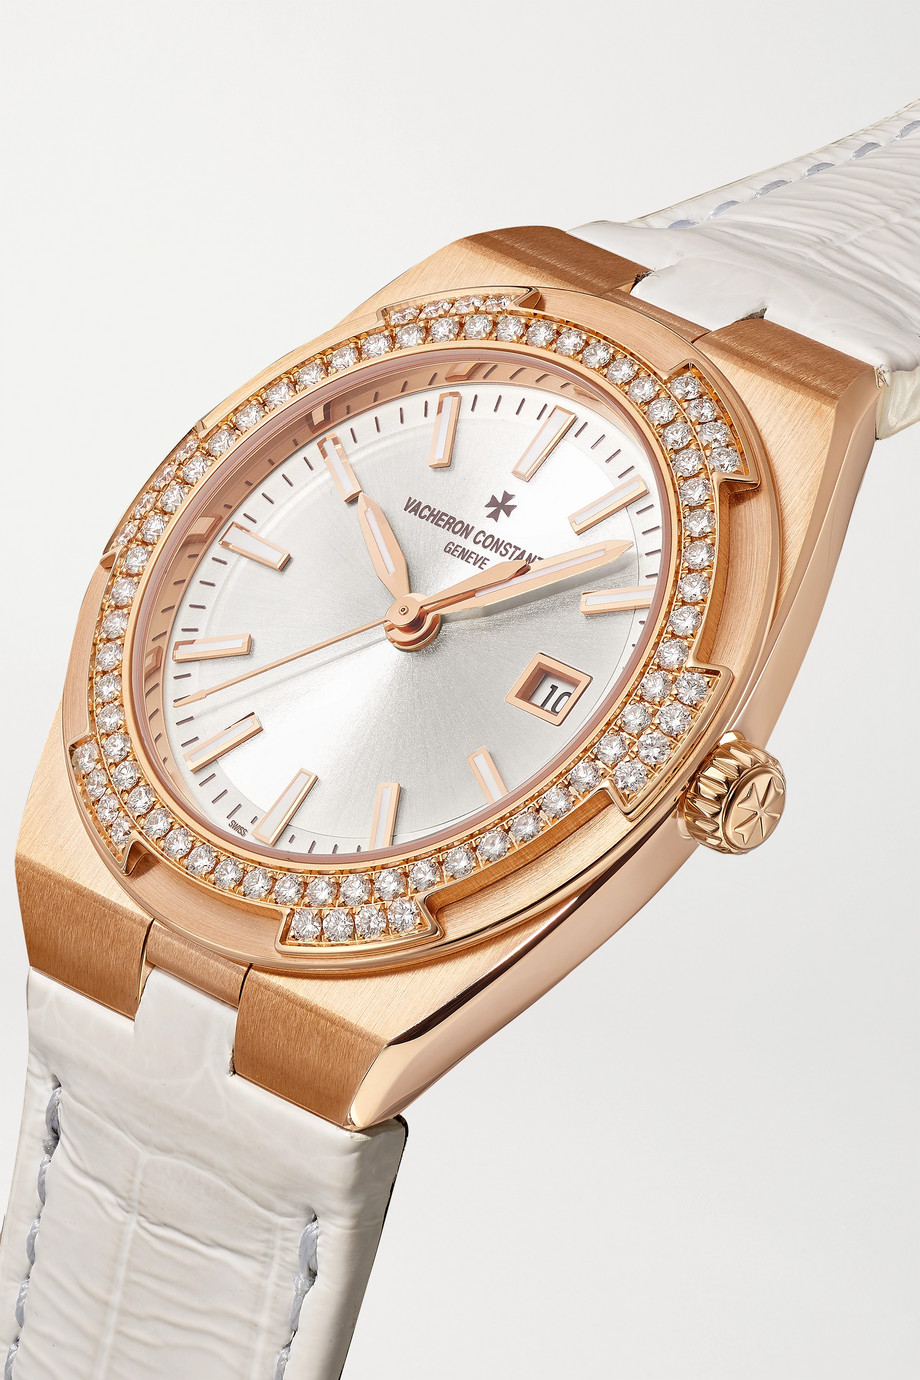 Vacheron Constantin Overseas 33mm 18-karat pink gold, alligator and diamond watch